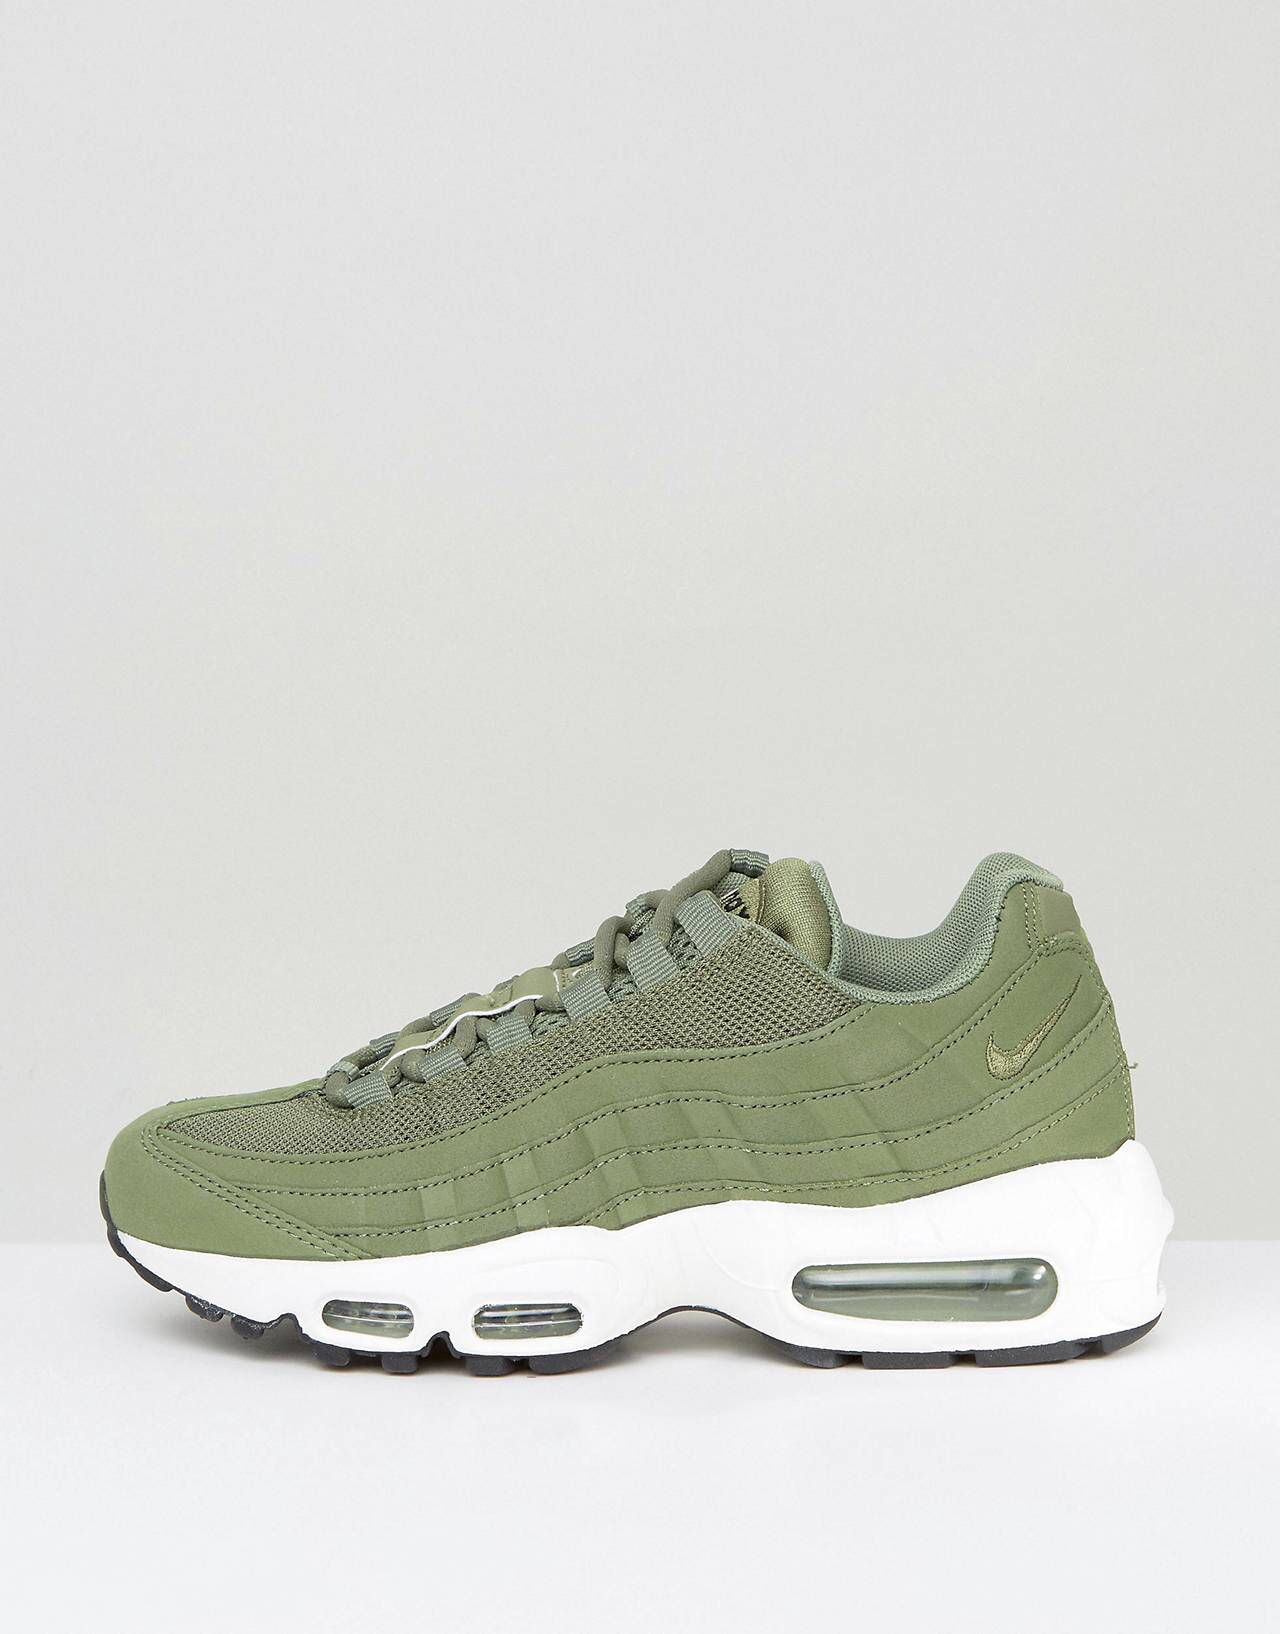 separation shoes 50df9 6cf61 Shop Nike Air Max 95 Trainers In Khaki at ASOS.